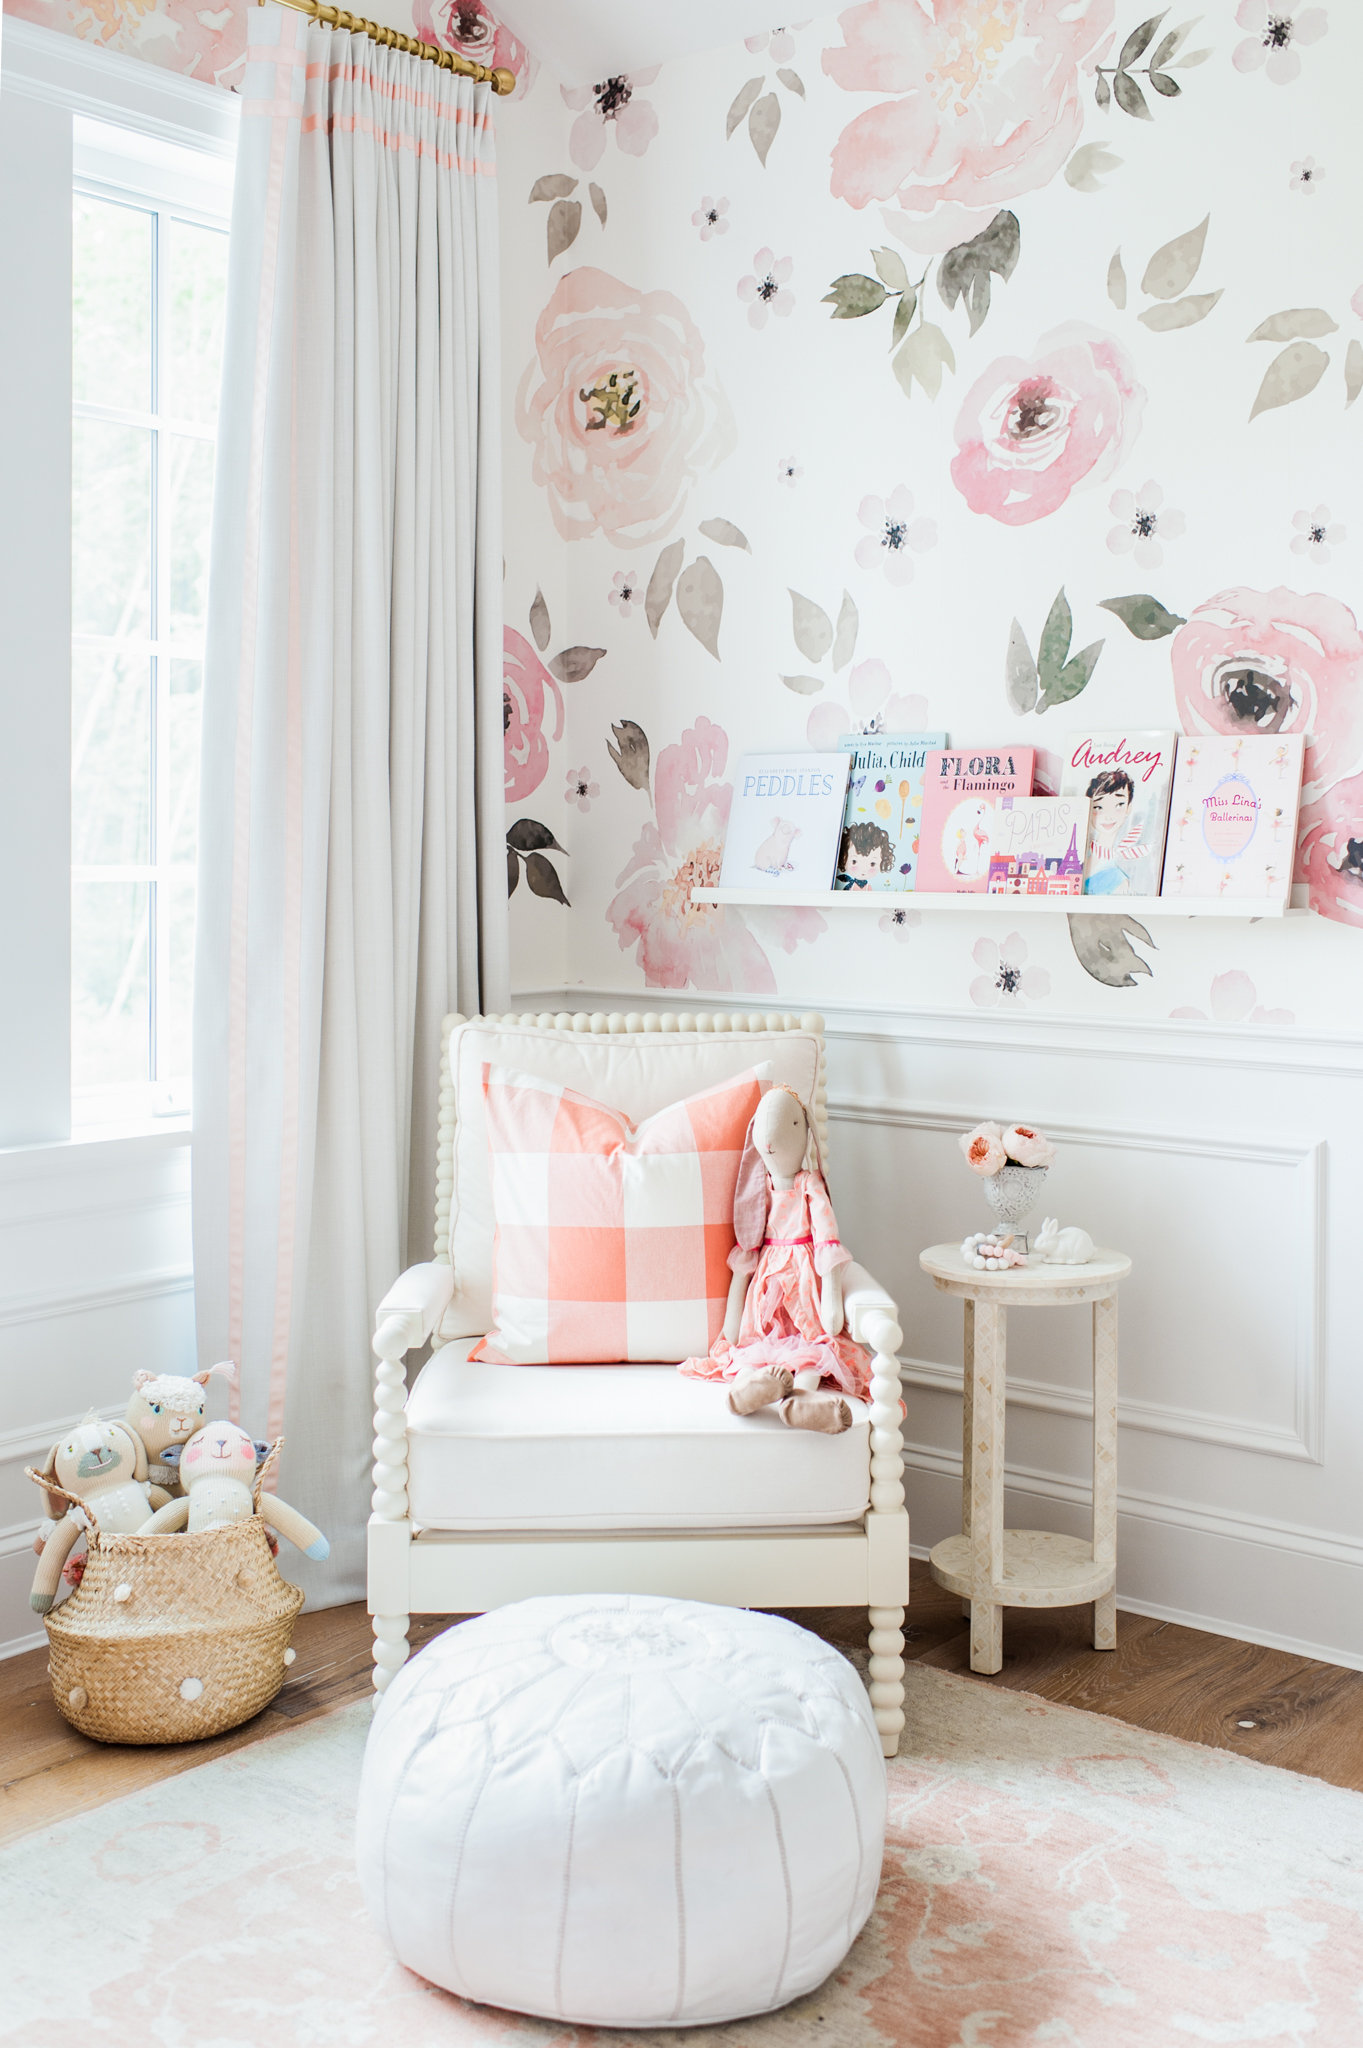 Are-you-a-book-lover-Love-a-special-place-or-spot-to-read-Your-kids-too-Come-and-check-out-these-wallpaper-wp5803606